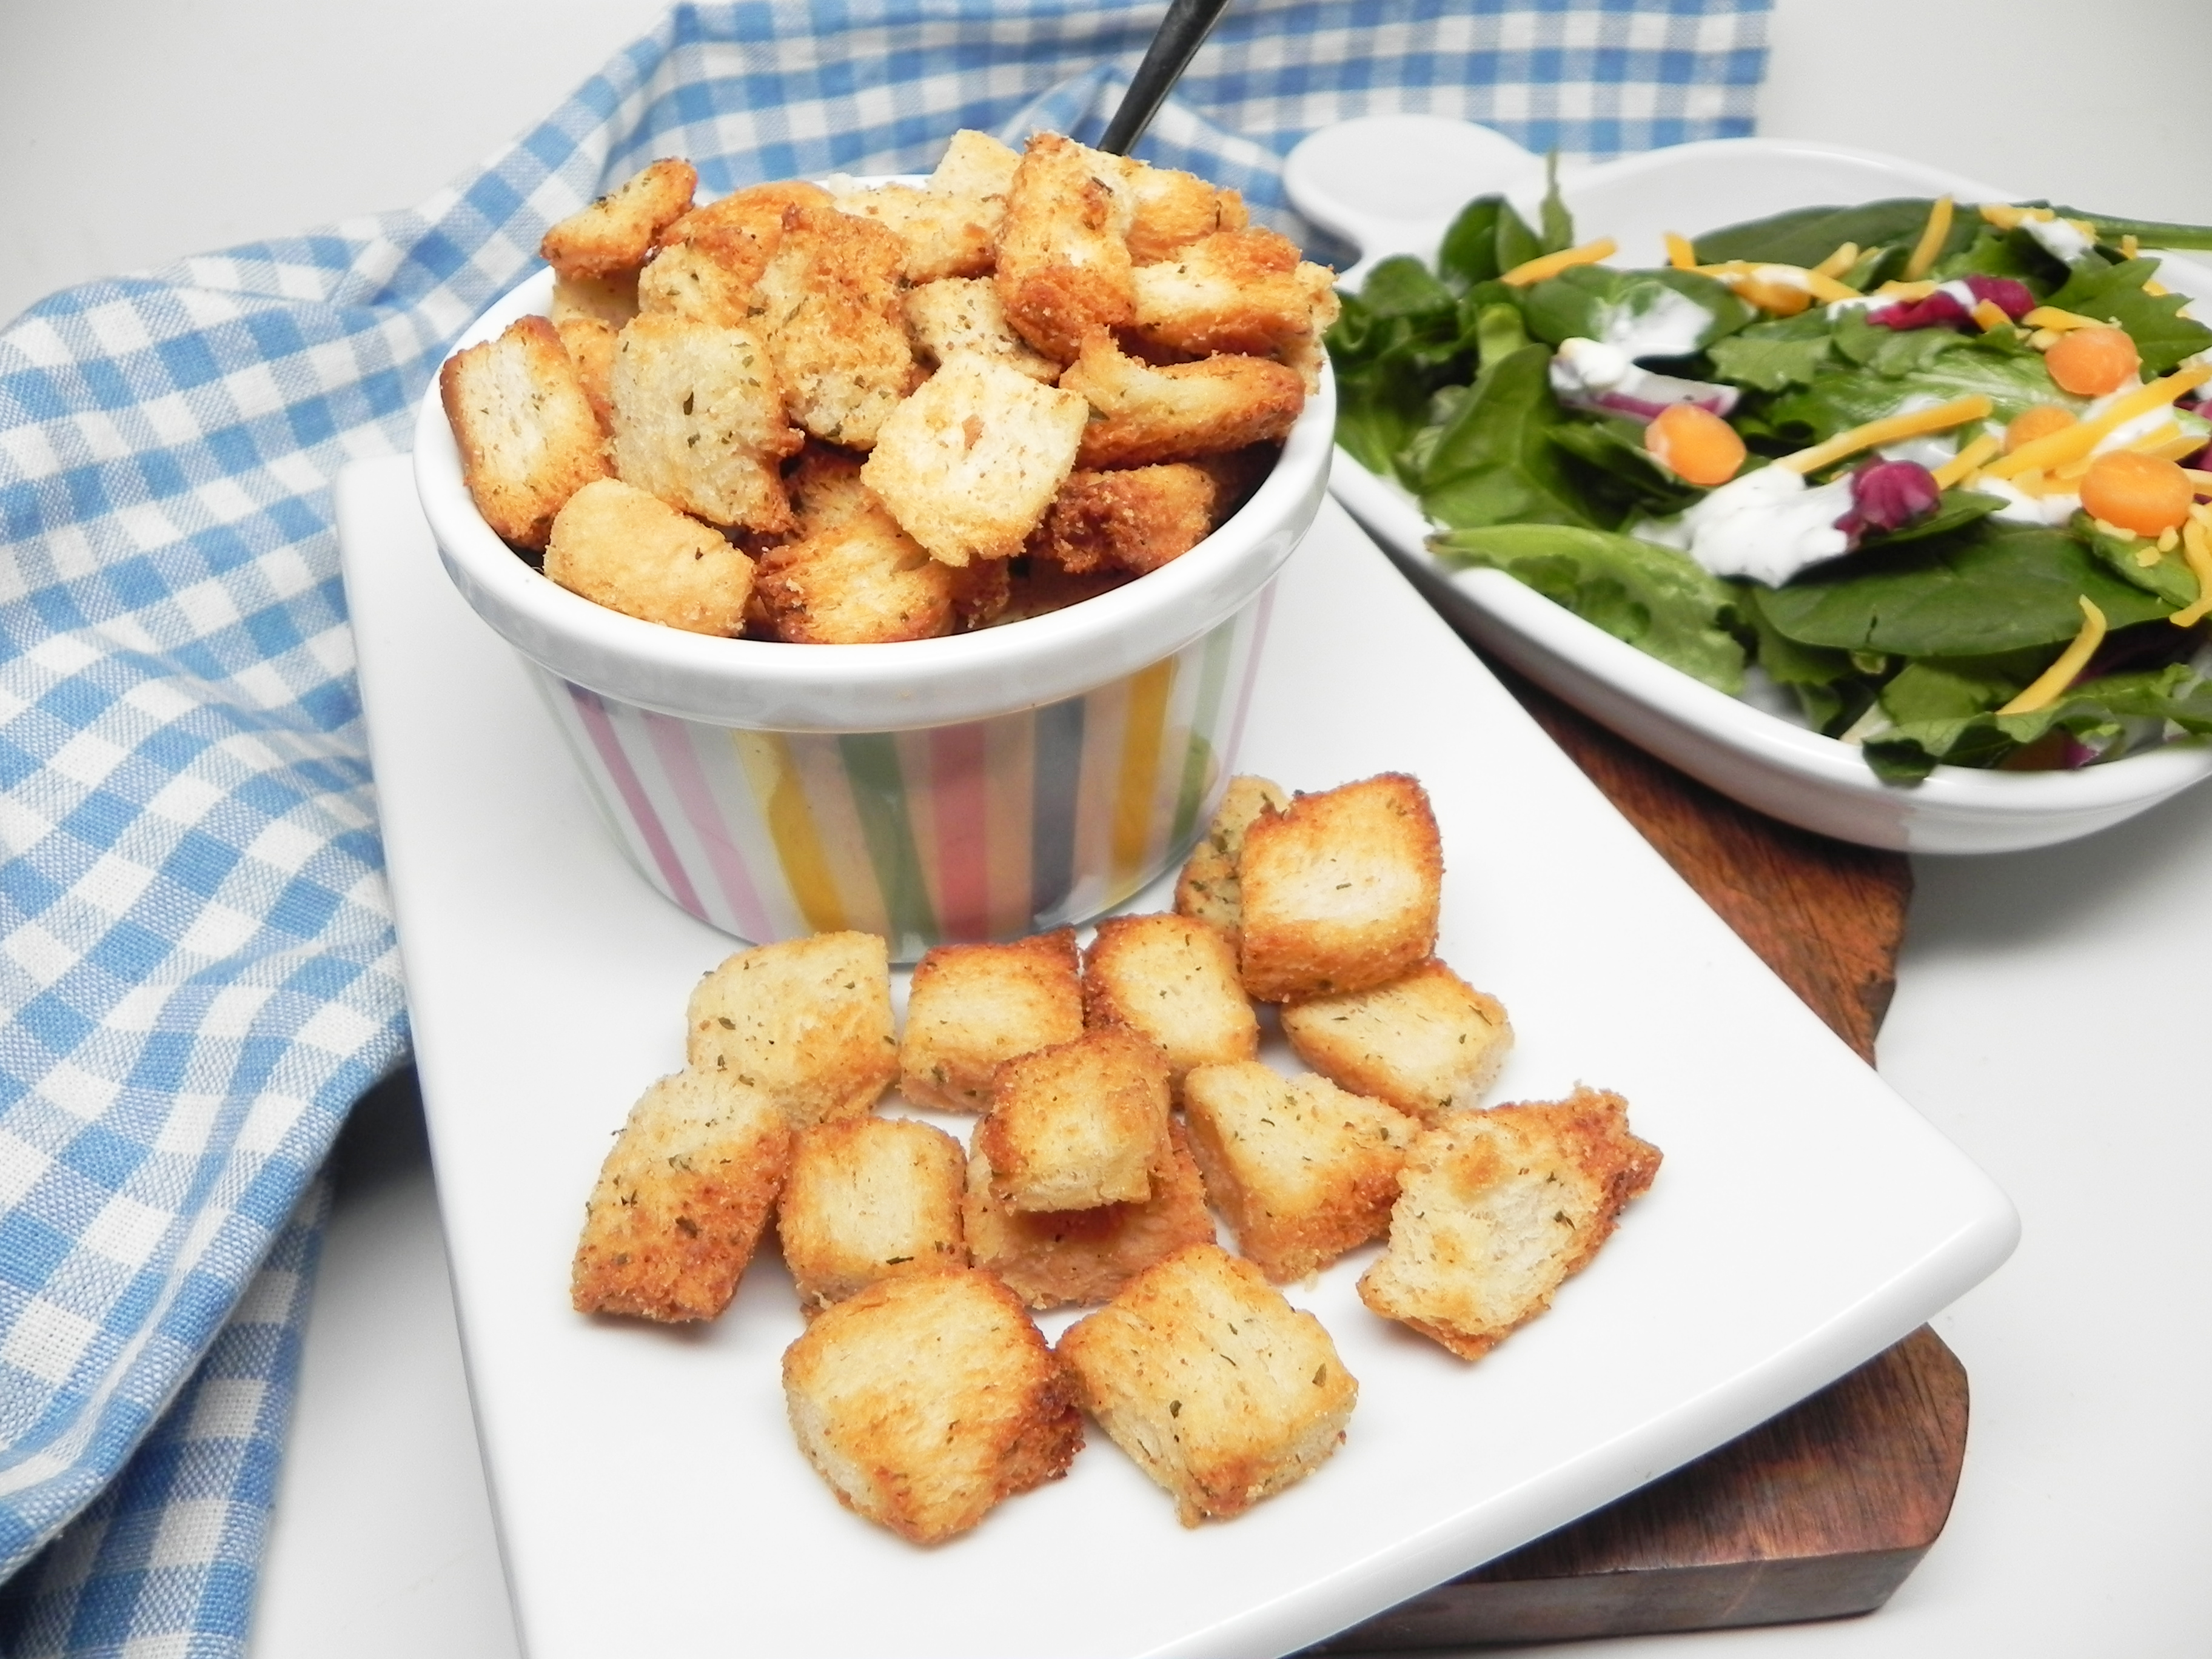 Homemade Croutons in the Air Fryer